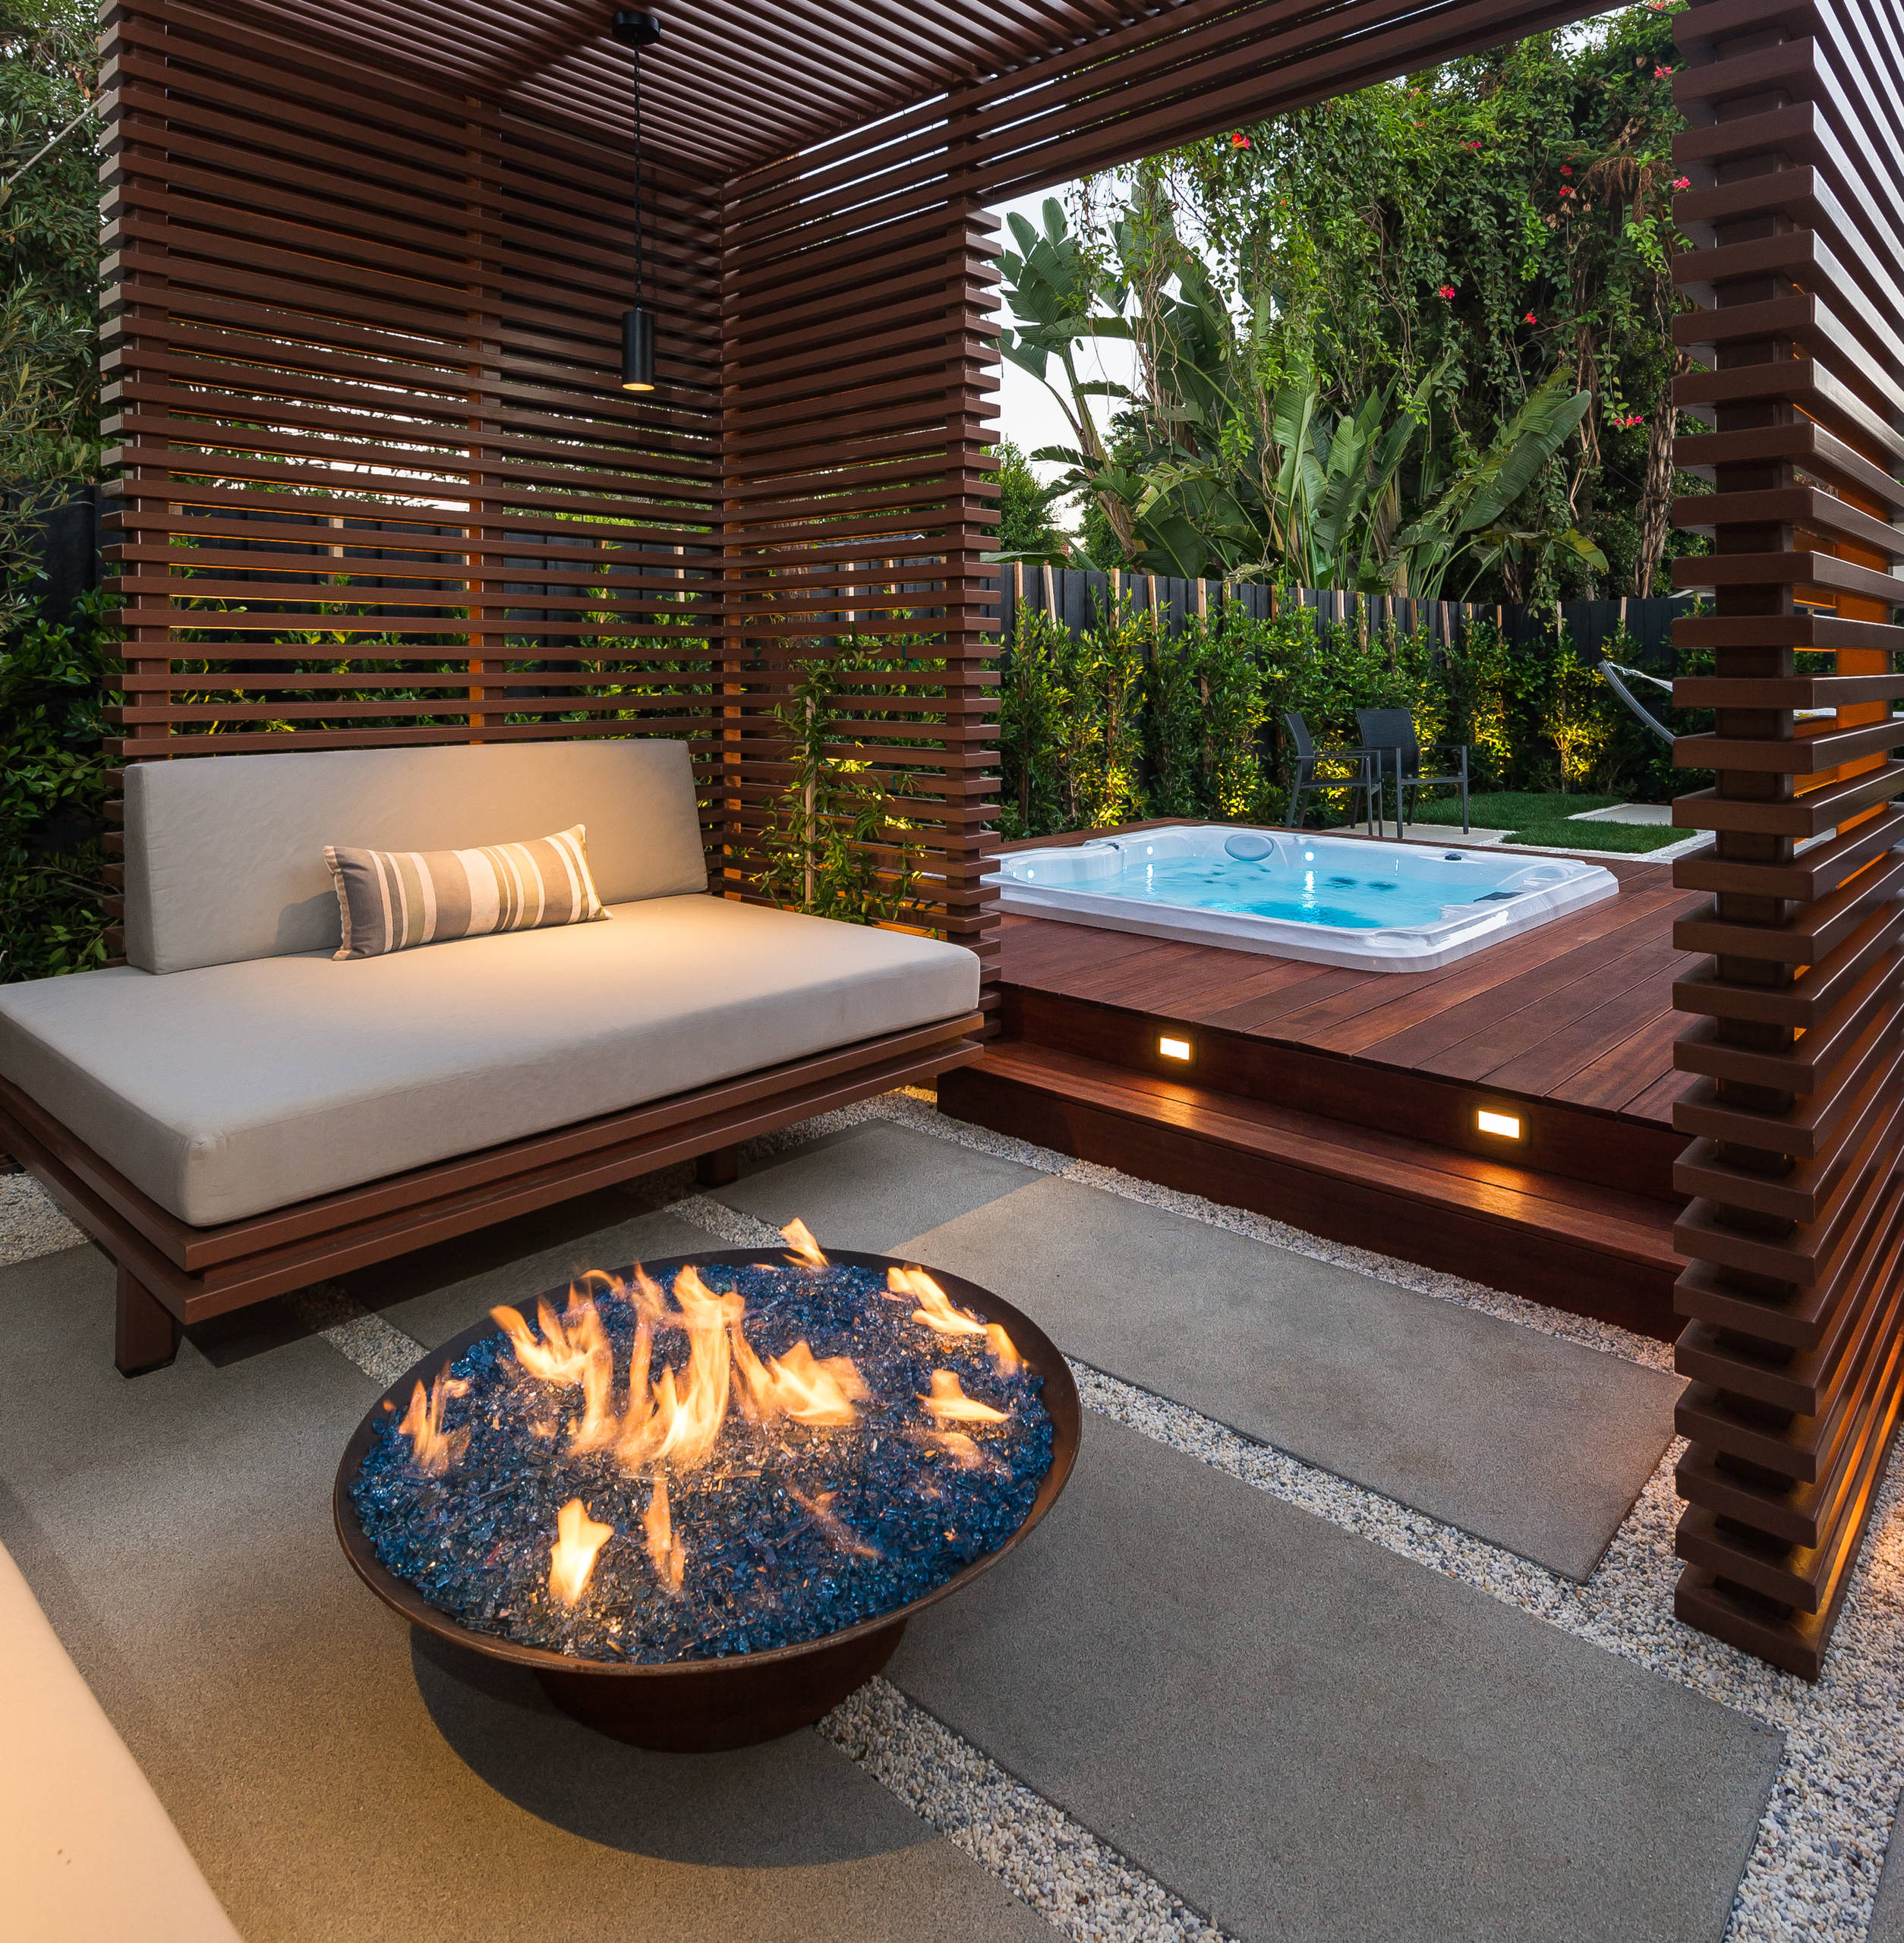 75 Beautiful Outdoor Design Houzz Pictures Ideas March 2021 Houzz